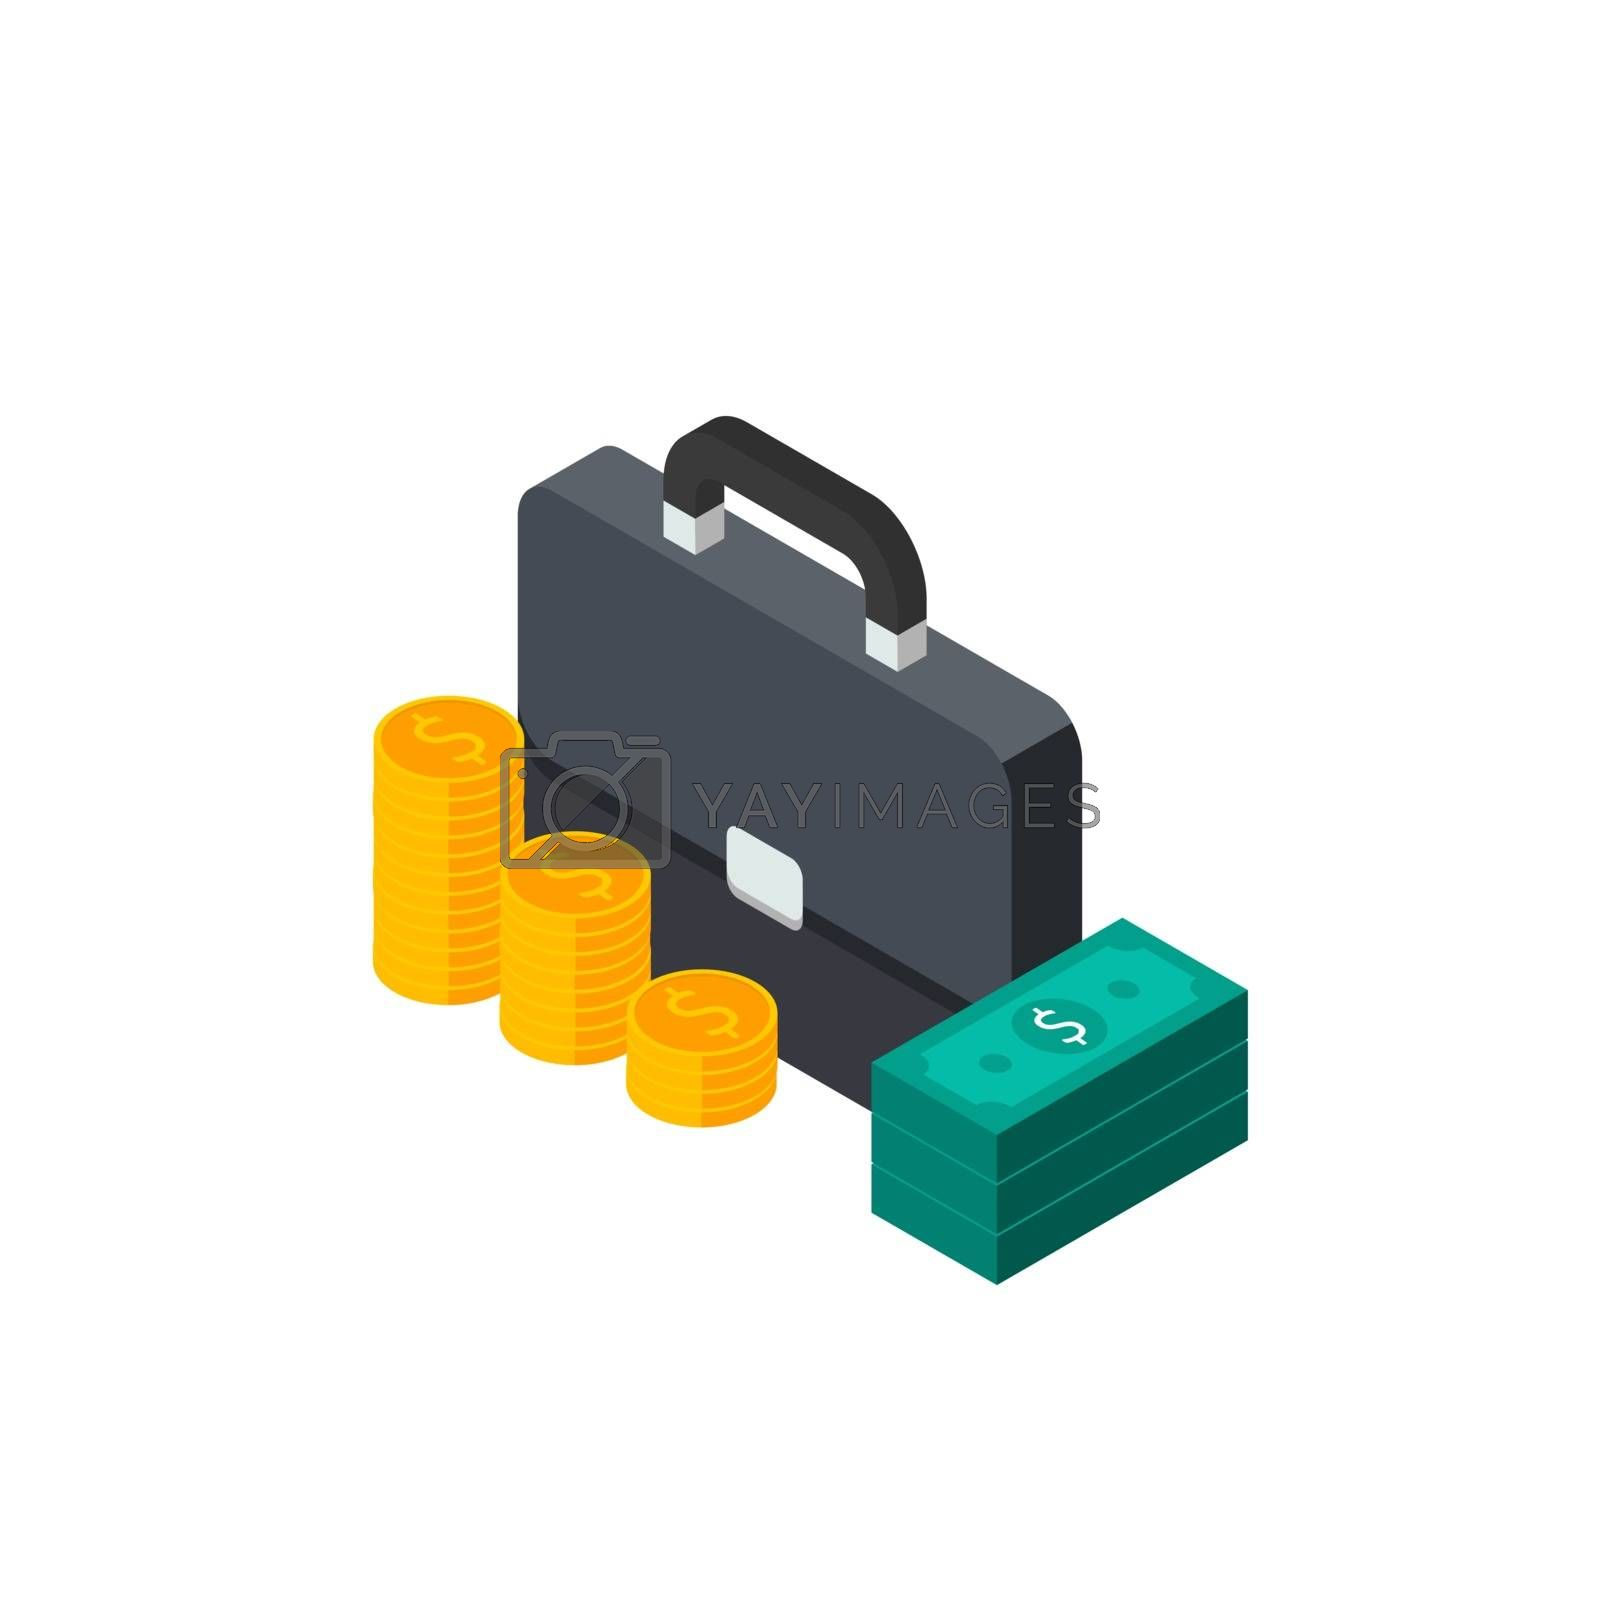 Briefcase, Dollar money cash icon, Gold coin stack left view White Background icon vector isometric. Flat style vector illustration.